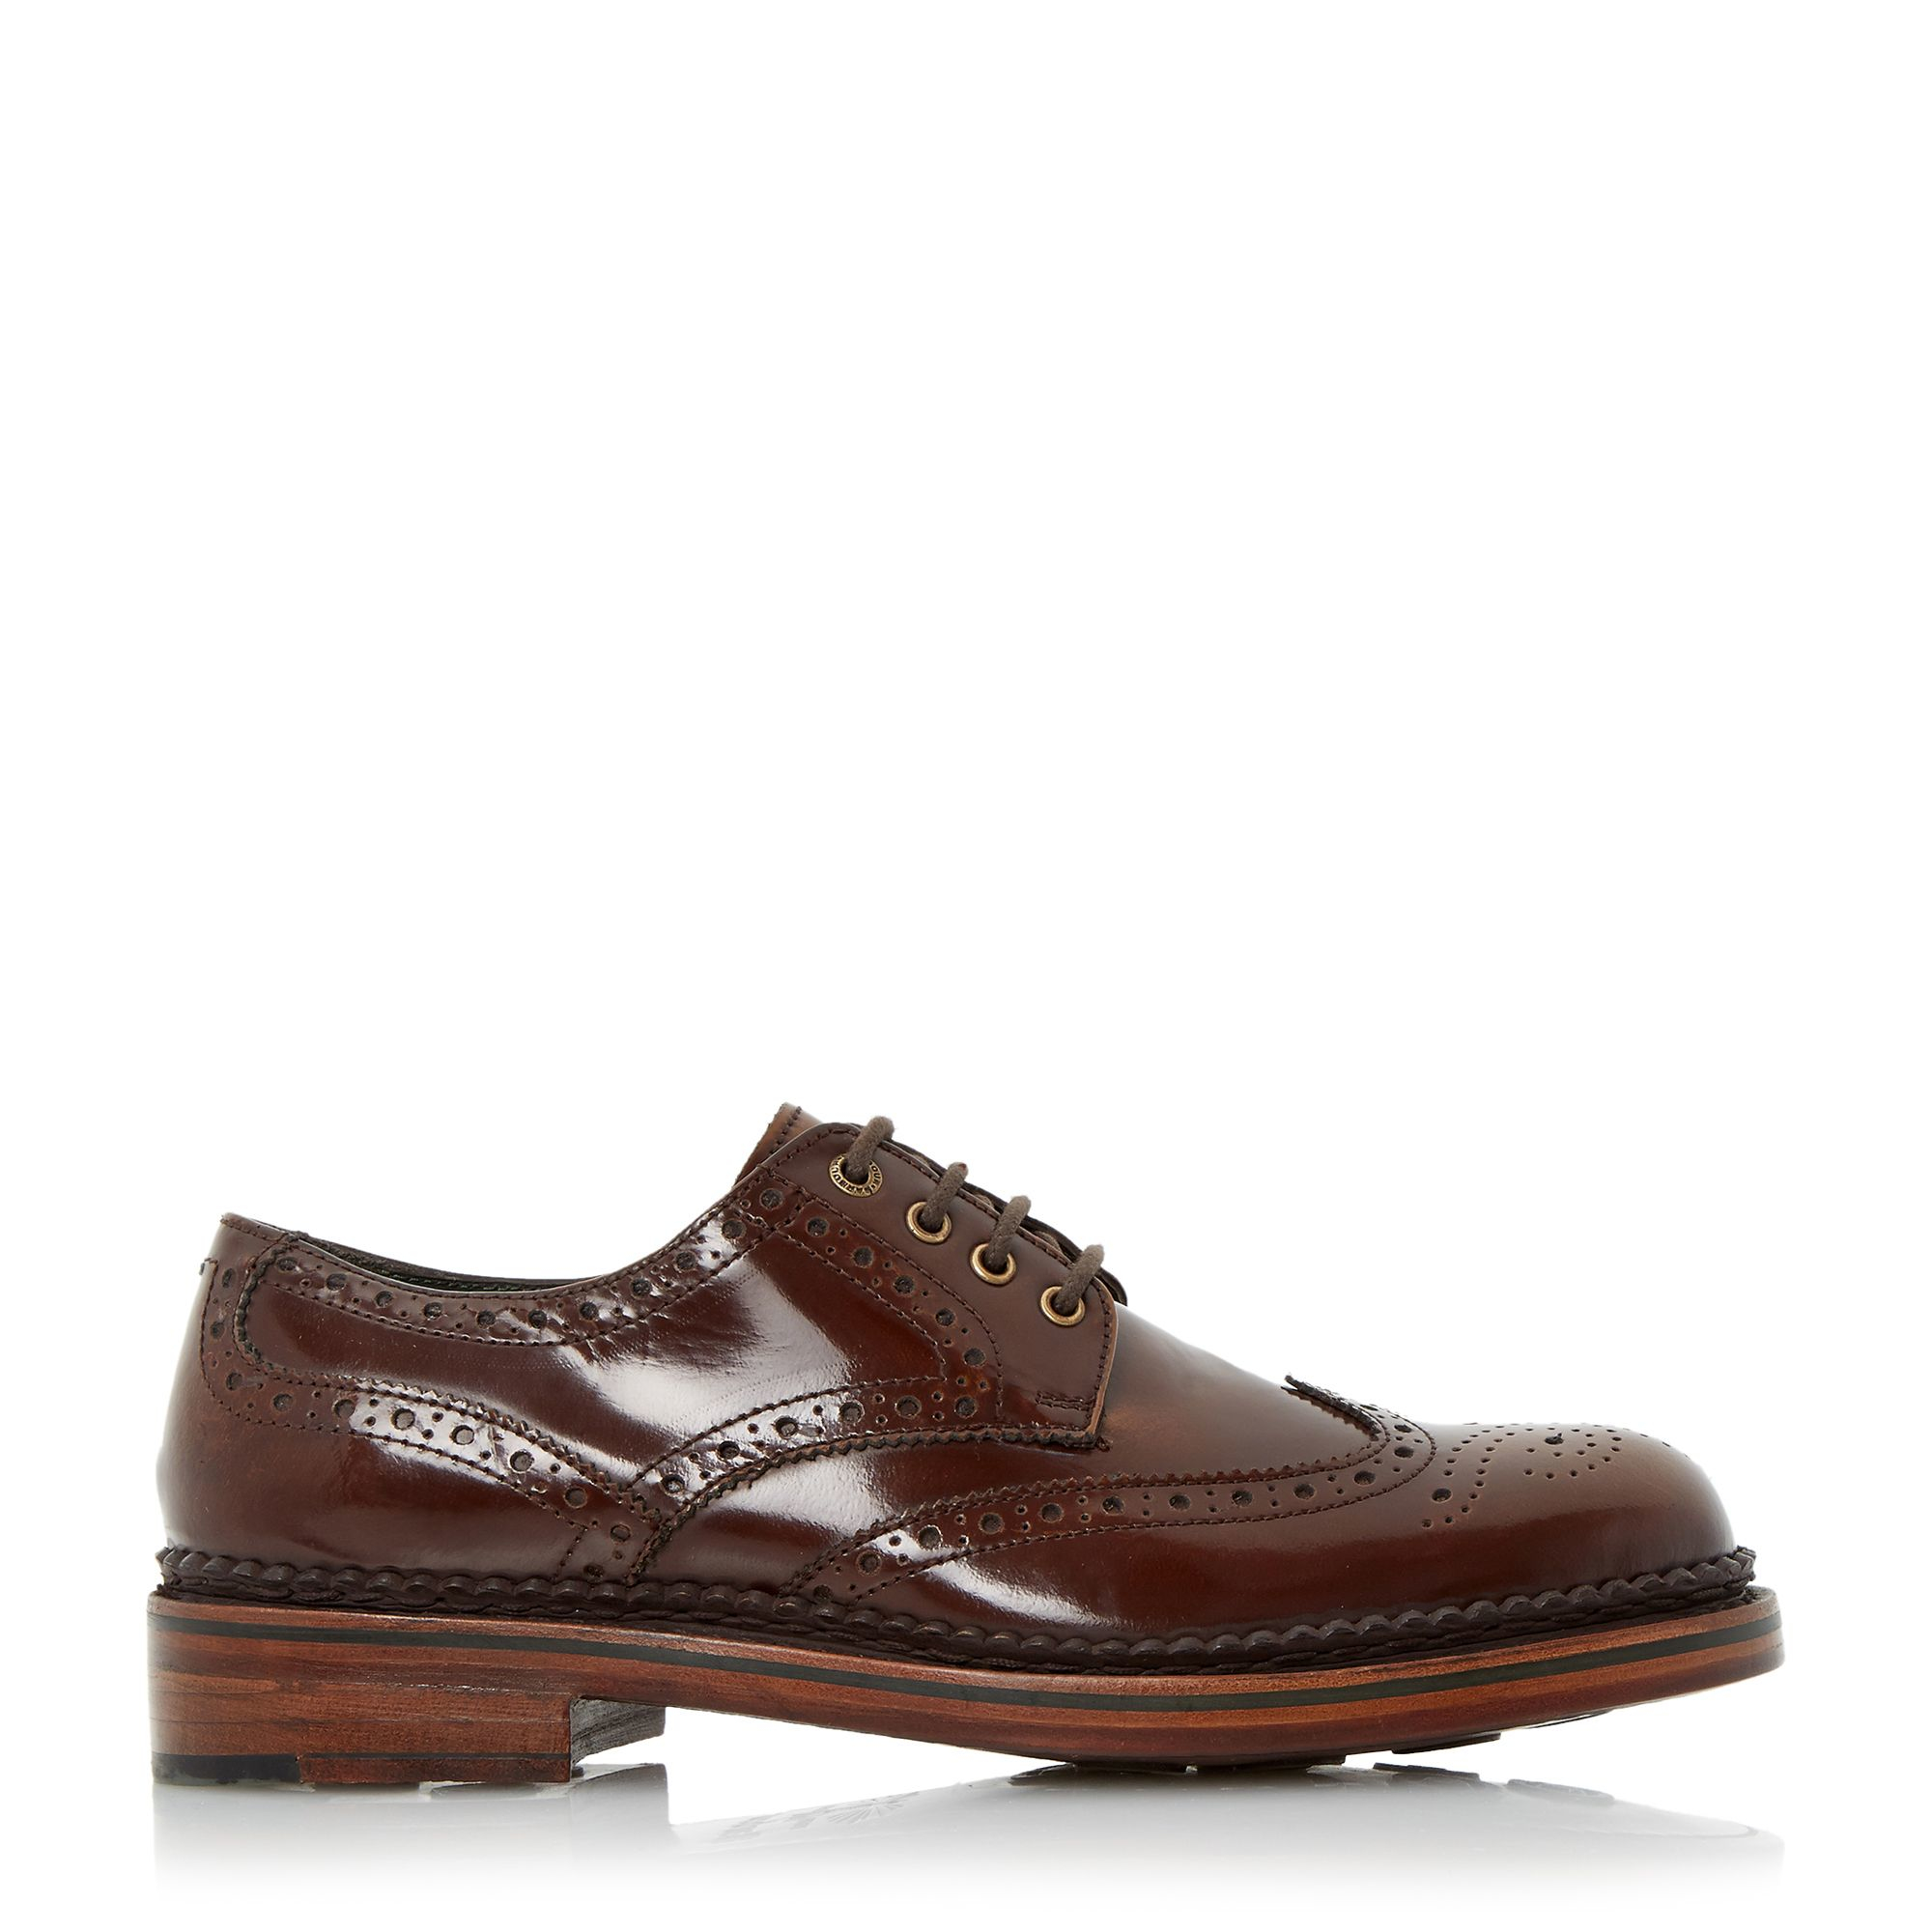 How To Shine Leather Shoes Naturally